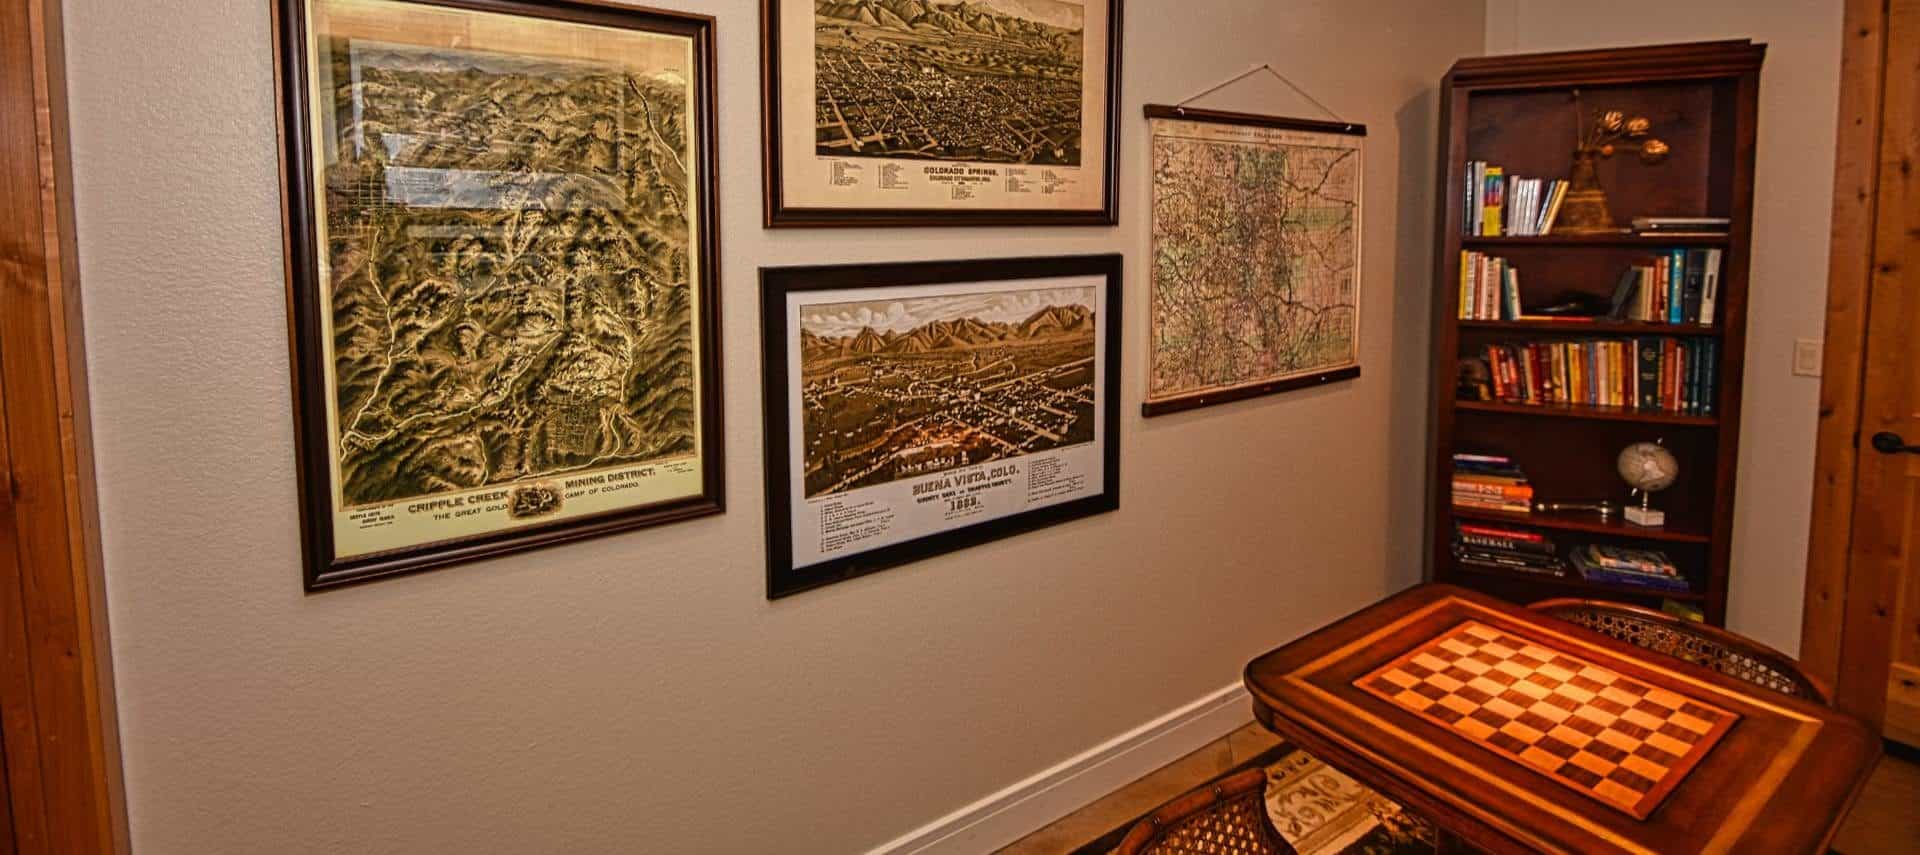 Room with wooden game board table with chairs, dark wooden bookcase with books and games, and framed pictures of town maps